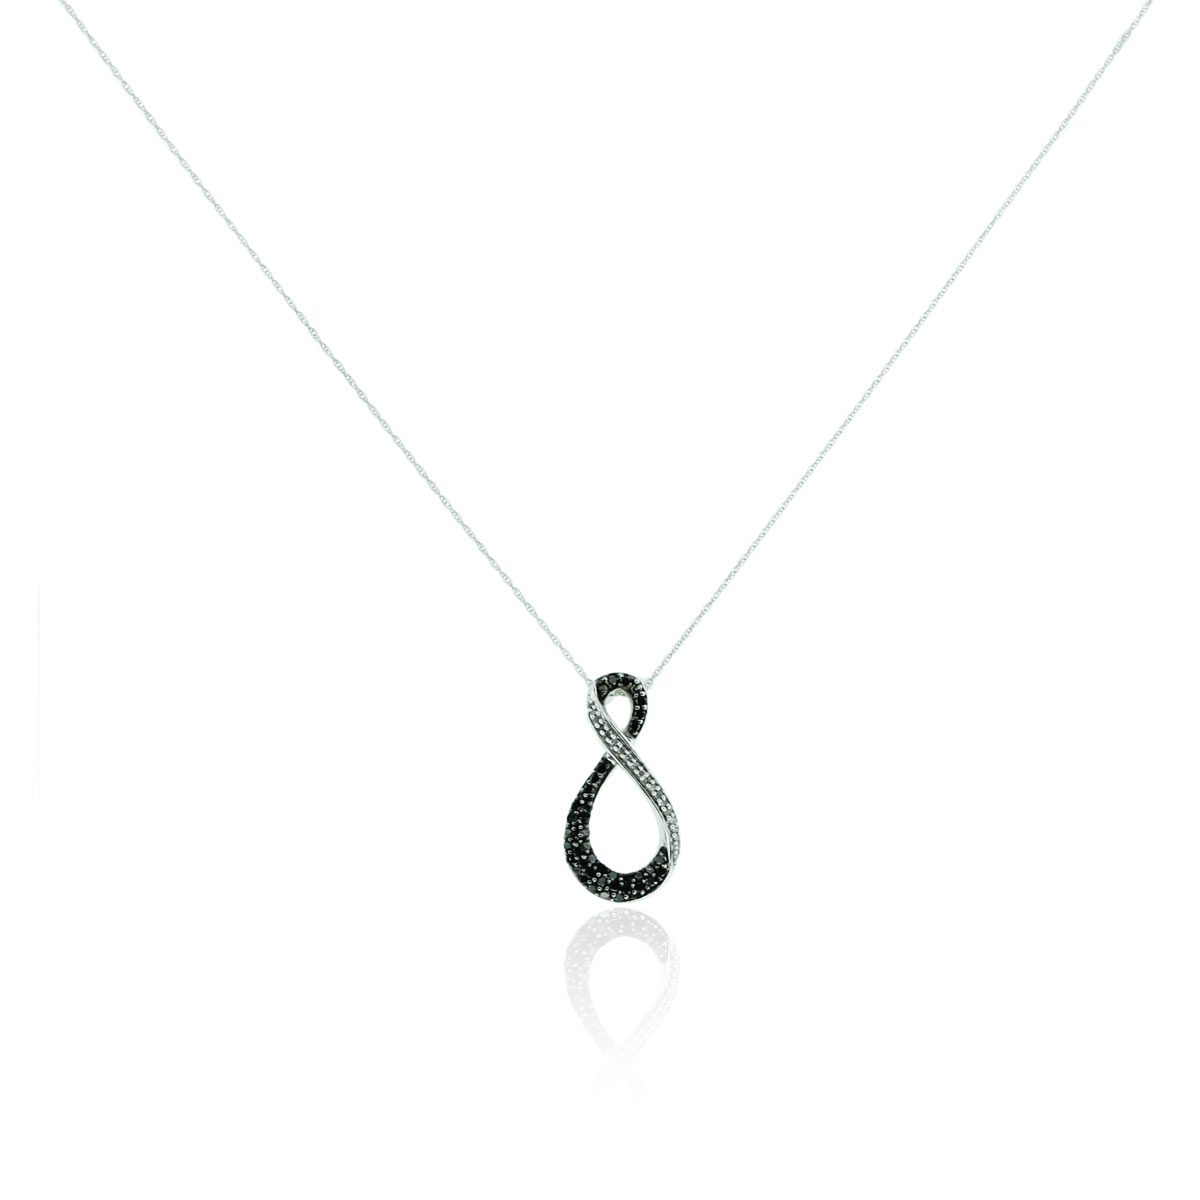 You are viewing this 10k White Gold Black and White Diamond Infinity Necklace!